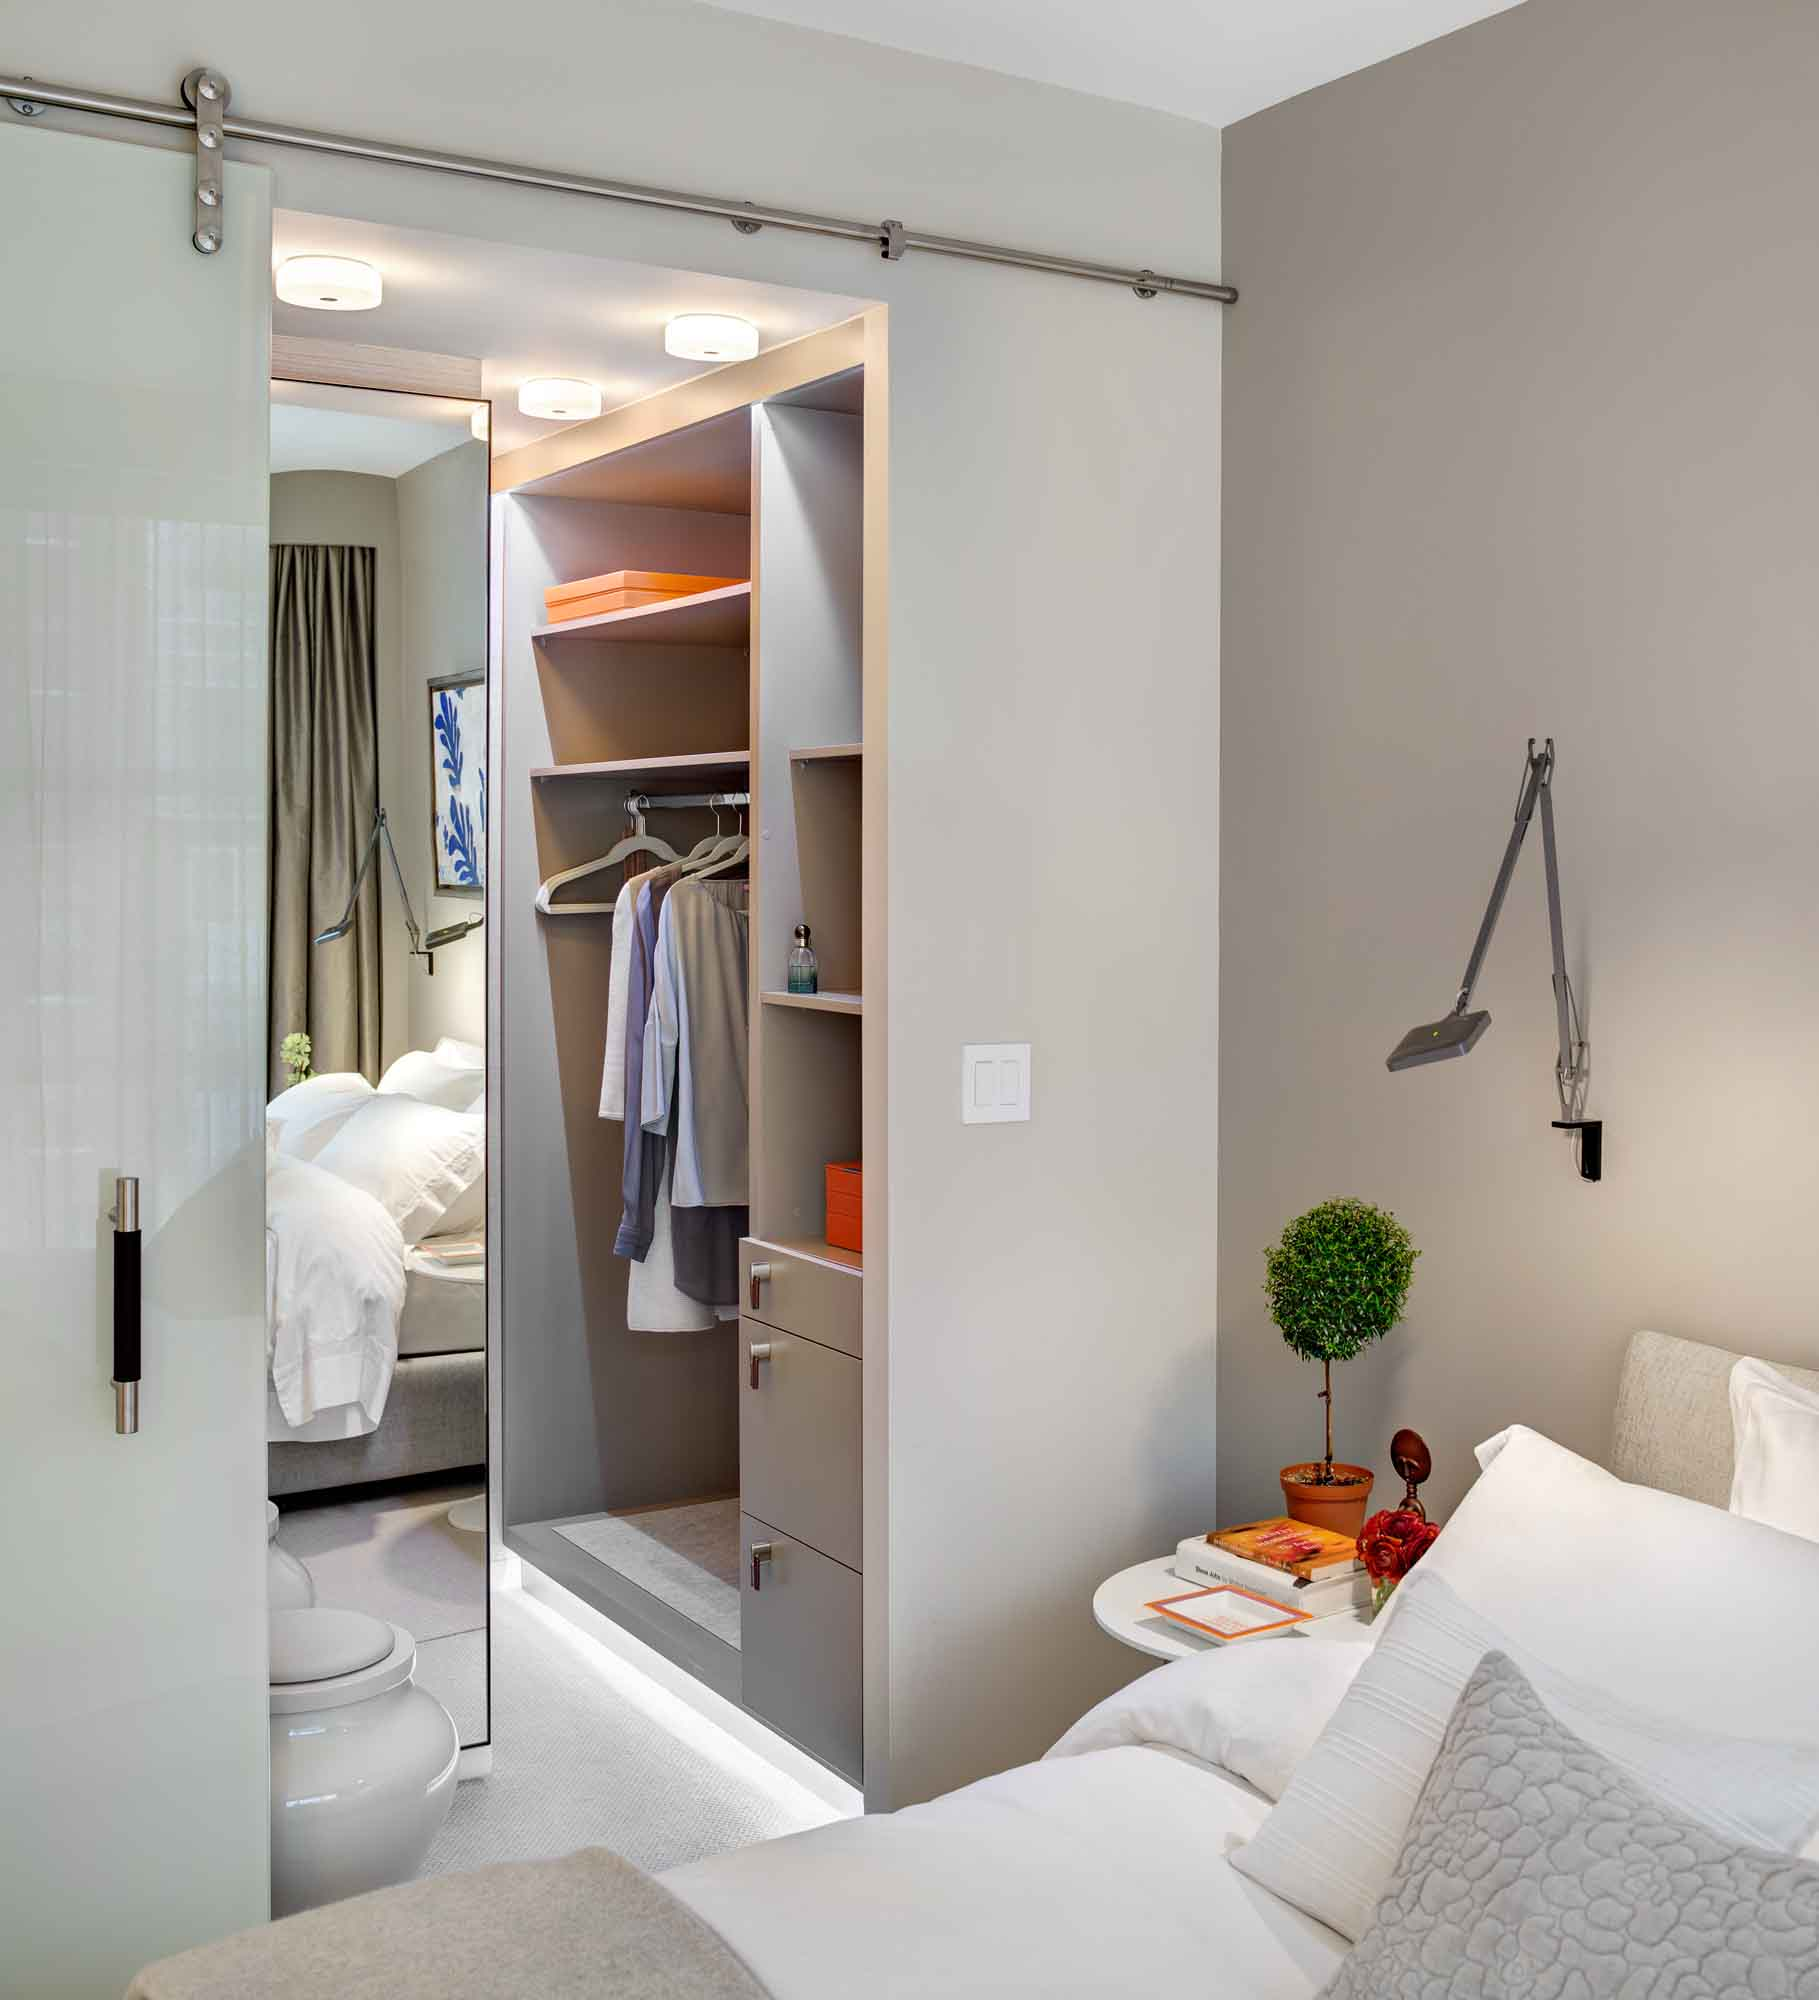 Take a look at this stylish closet. Despite its large size, it does not take up much free space. On the other hand, the closet adds some functionality and high style to the bedroom interior next to it. When you look at this closet, you see that the closet is kind of built into the wall, does not bulge out and does not take up much free space. This closet fits harmoniously into the interior of this apartment not only in size but also in color. You can add some functionality and high-style to your own bedroom interior as well by placing a stylish and beautiful closet next to your bedroom. Contact our design studio in NYC and order our professionals who are bound to know the shortest way to beauty and functionality!